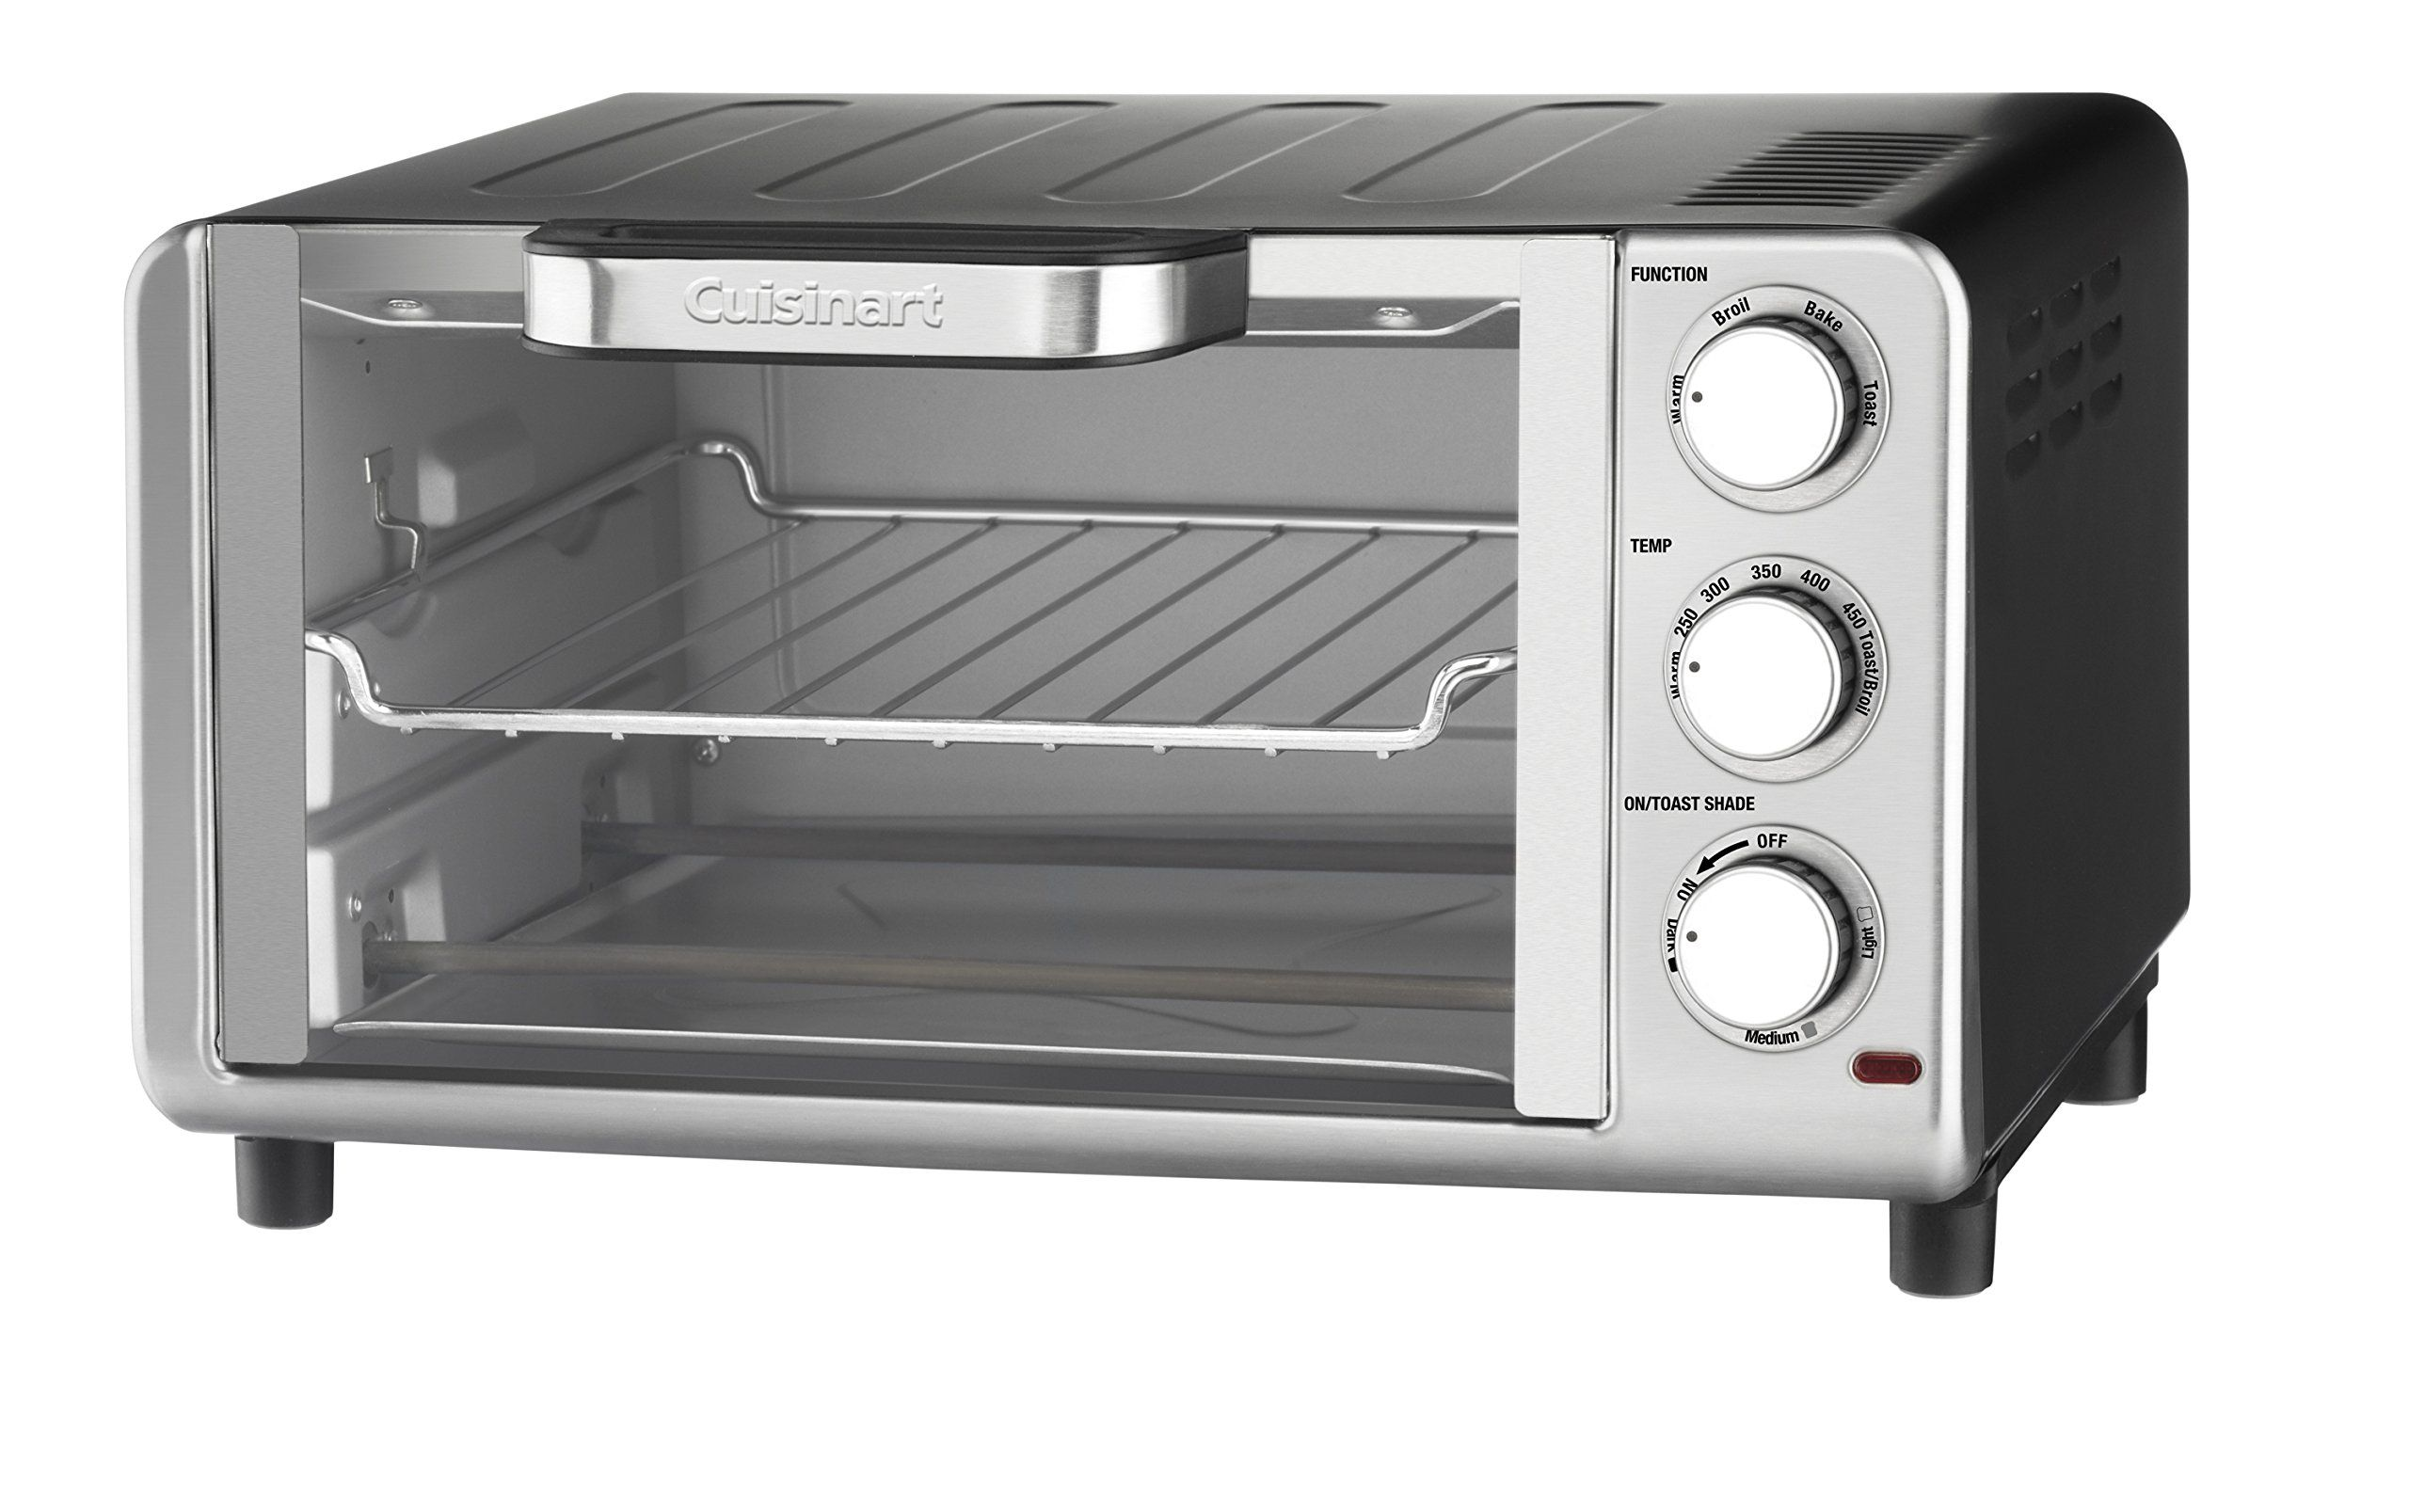 Cuisinart Tob80n Compact Toaster Oven Broiler Stainless Steel To View Further For This It Cuisinart Toaster Oven Convection Toaster Oven Toaster Oven Reviews